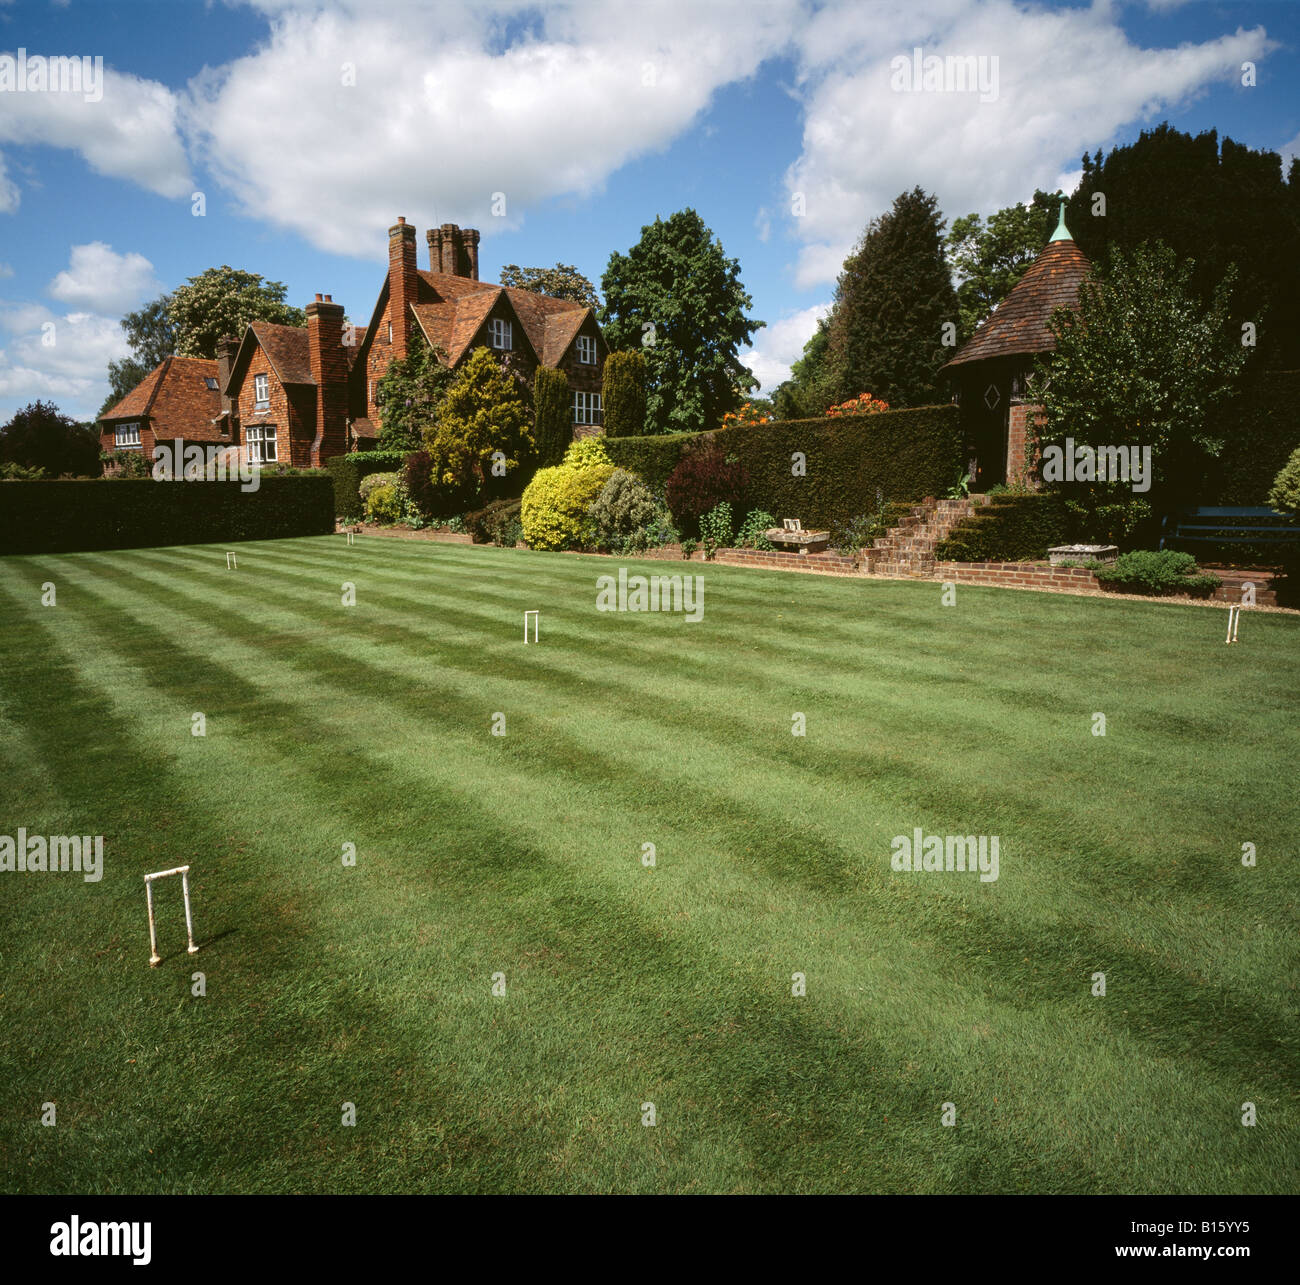 Croquet lawn in the gardens of a large country house Kent England UK. - Stock Image